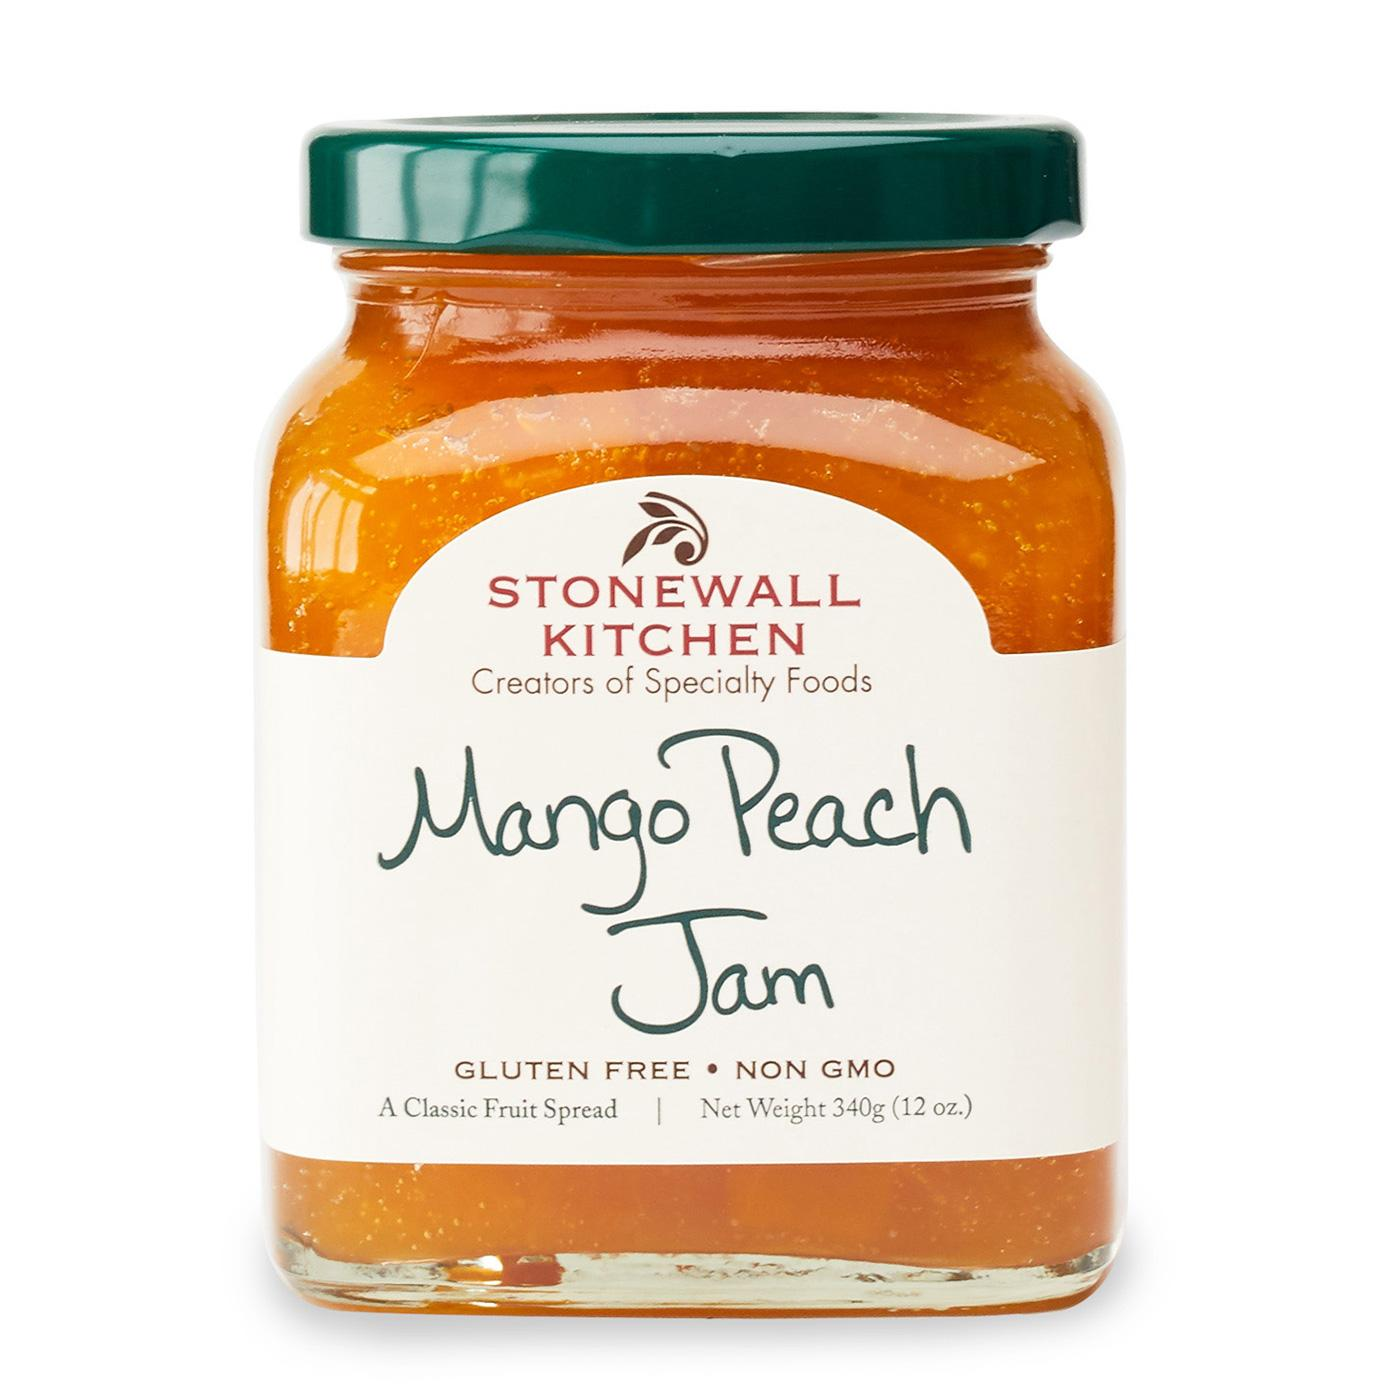 photo is a jar of stonewall kitchen mango peach jam 12 oz. made in maine